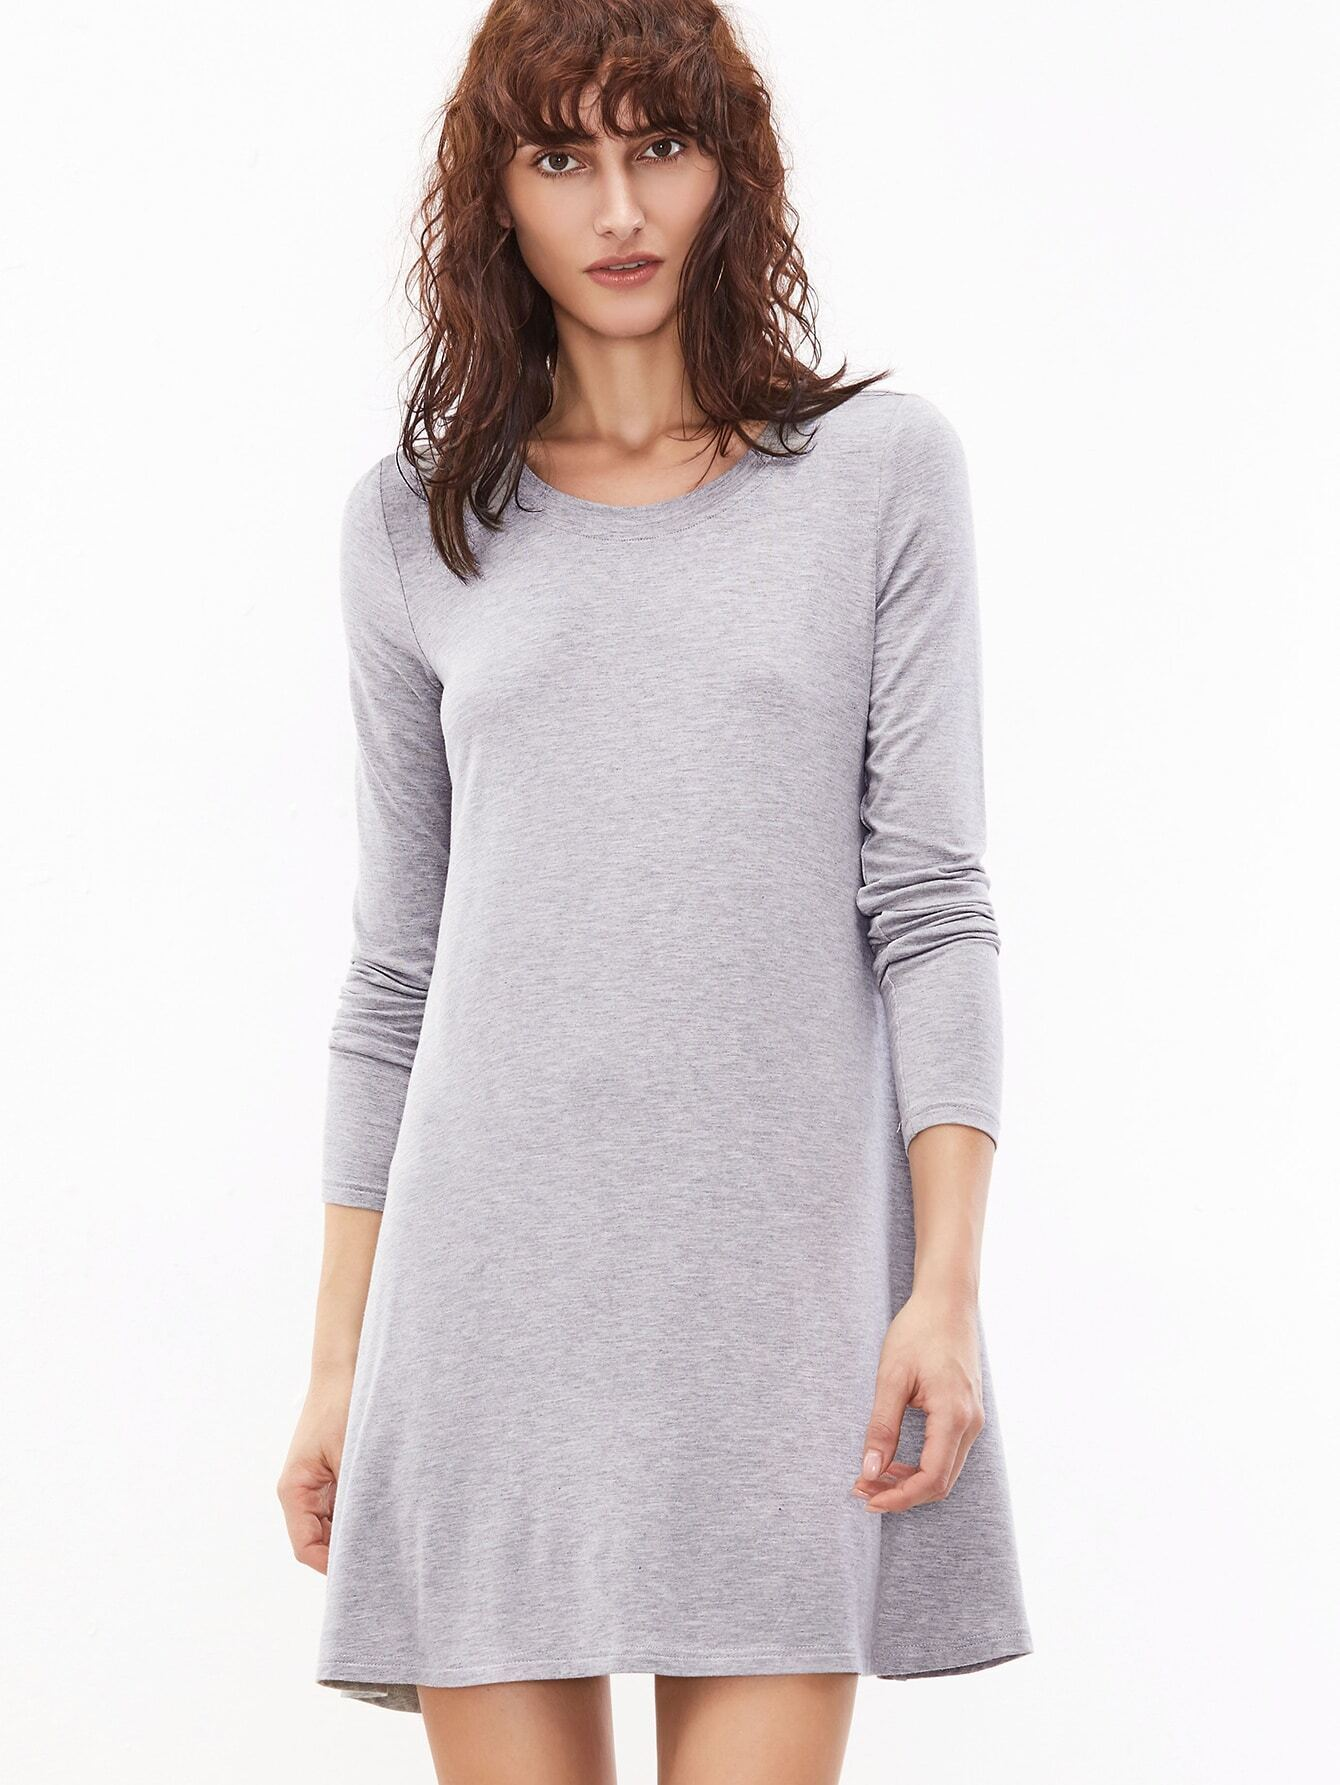 ac605969310 Heather Grey Long Sleeve T-shirt Dress EmmaCloth-Women Fast ...